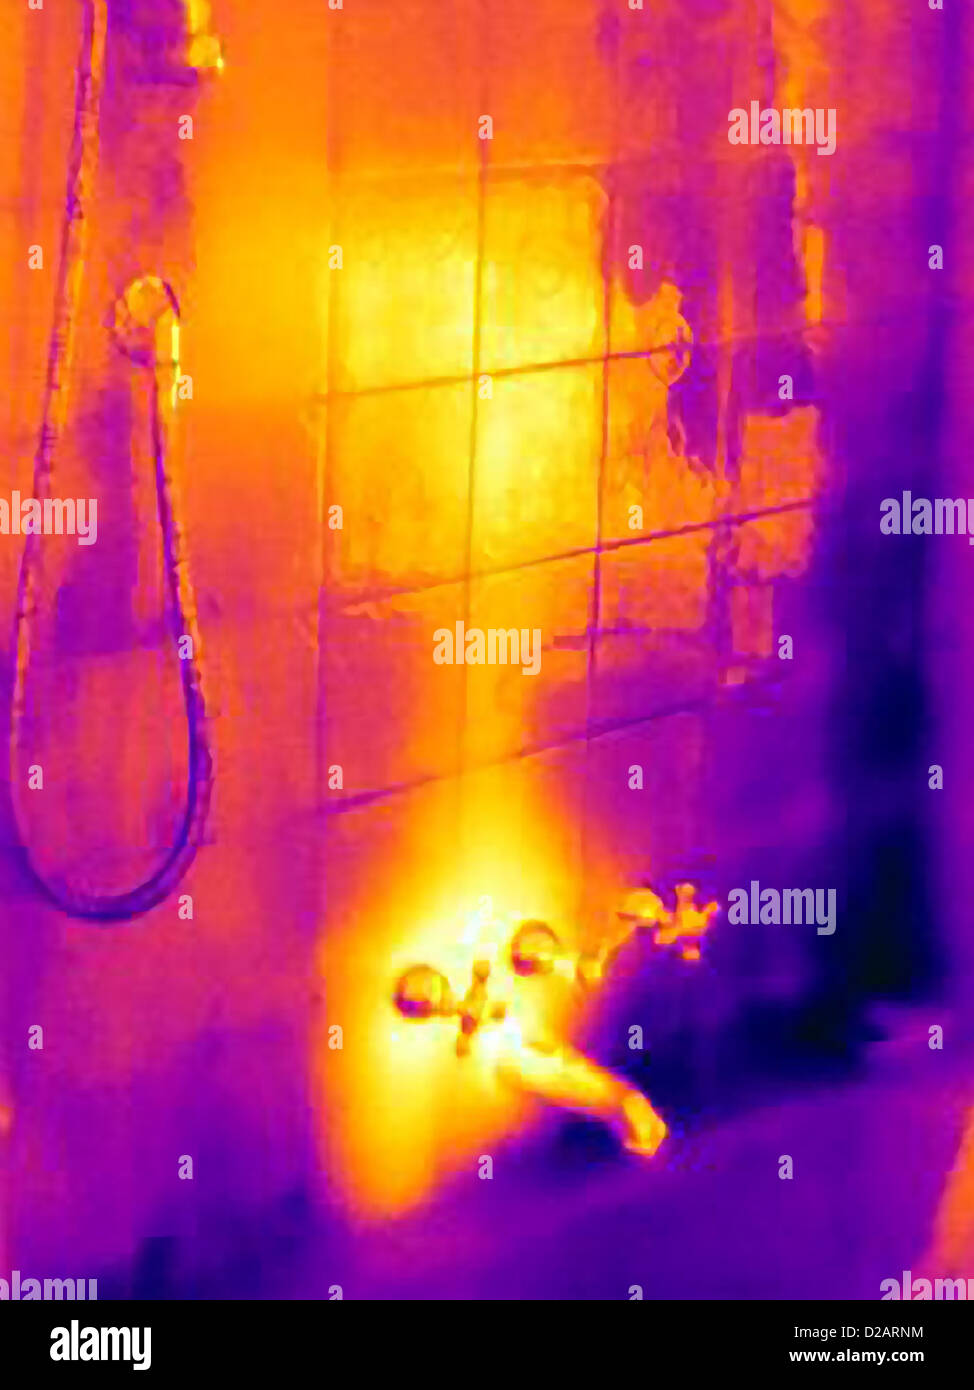 Thermal image of shower faucet - Stock Image